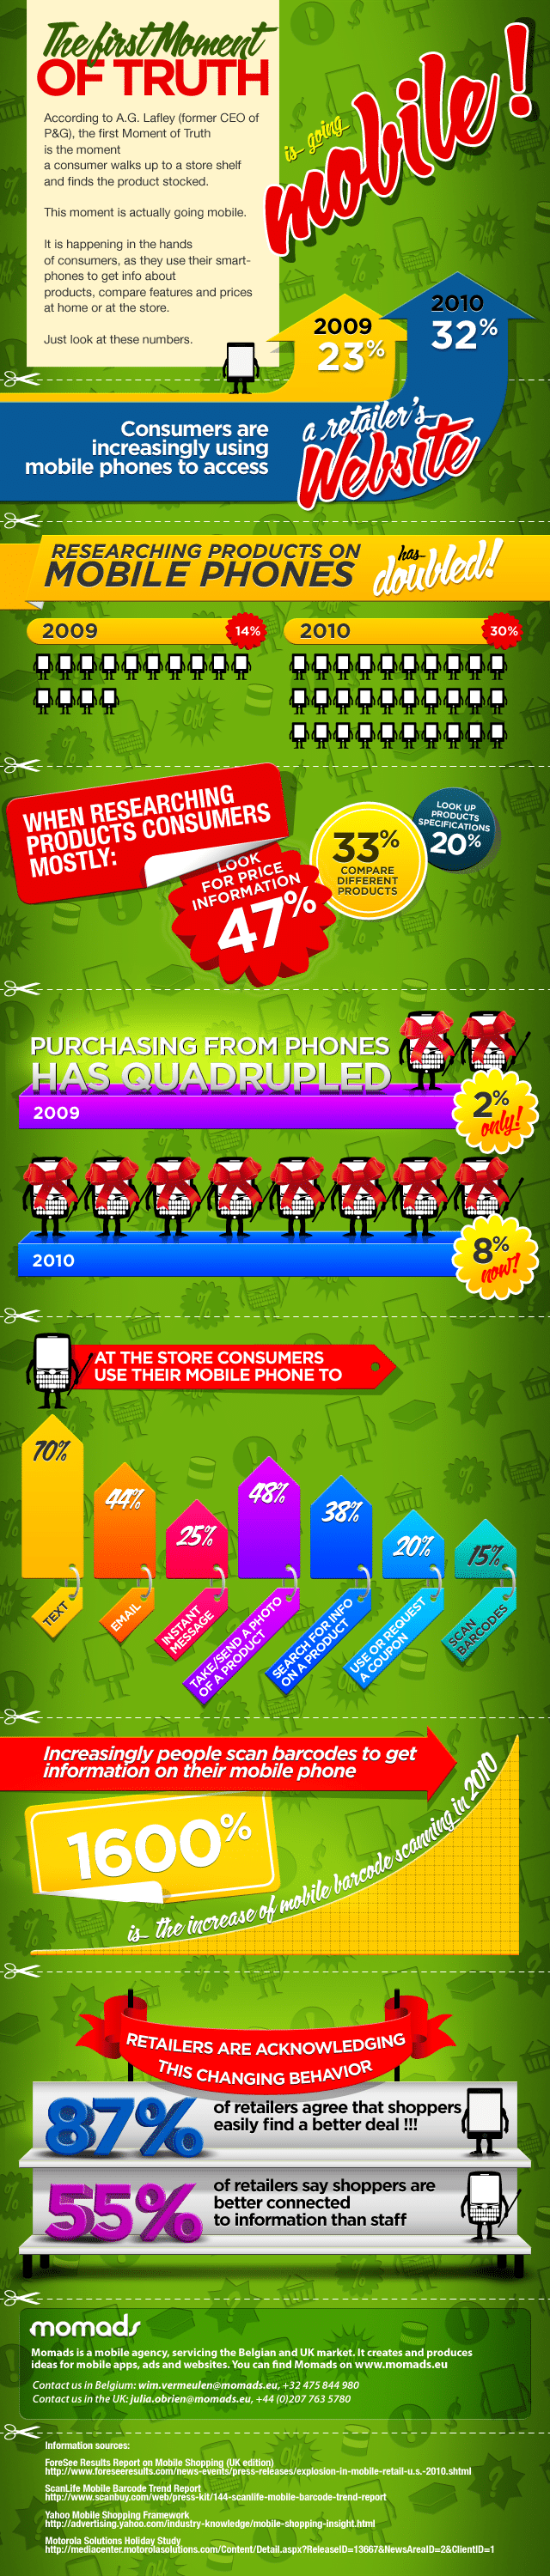 How Mobile Shopping Is Changing The World [Infographic]